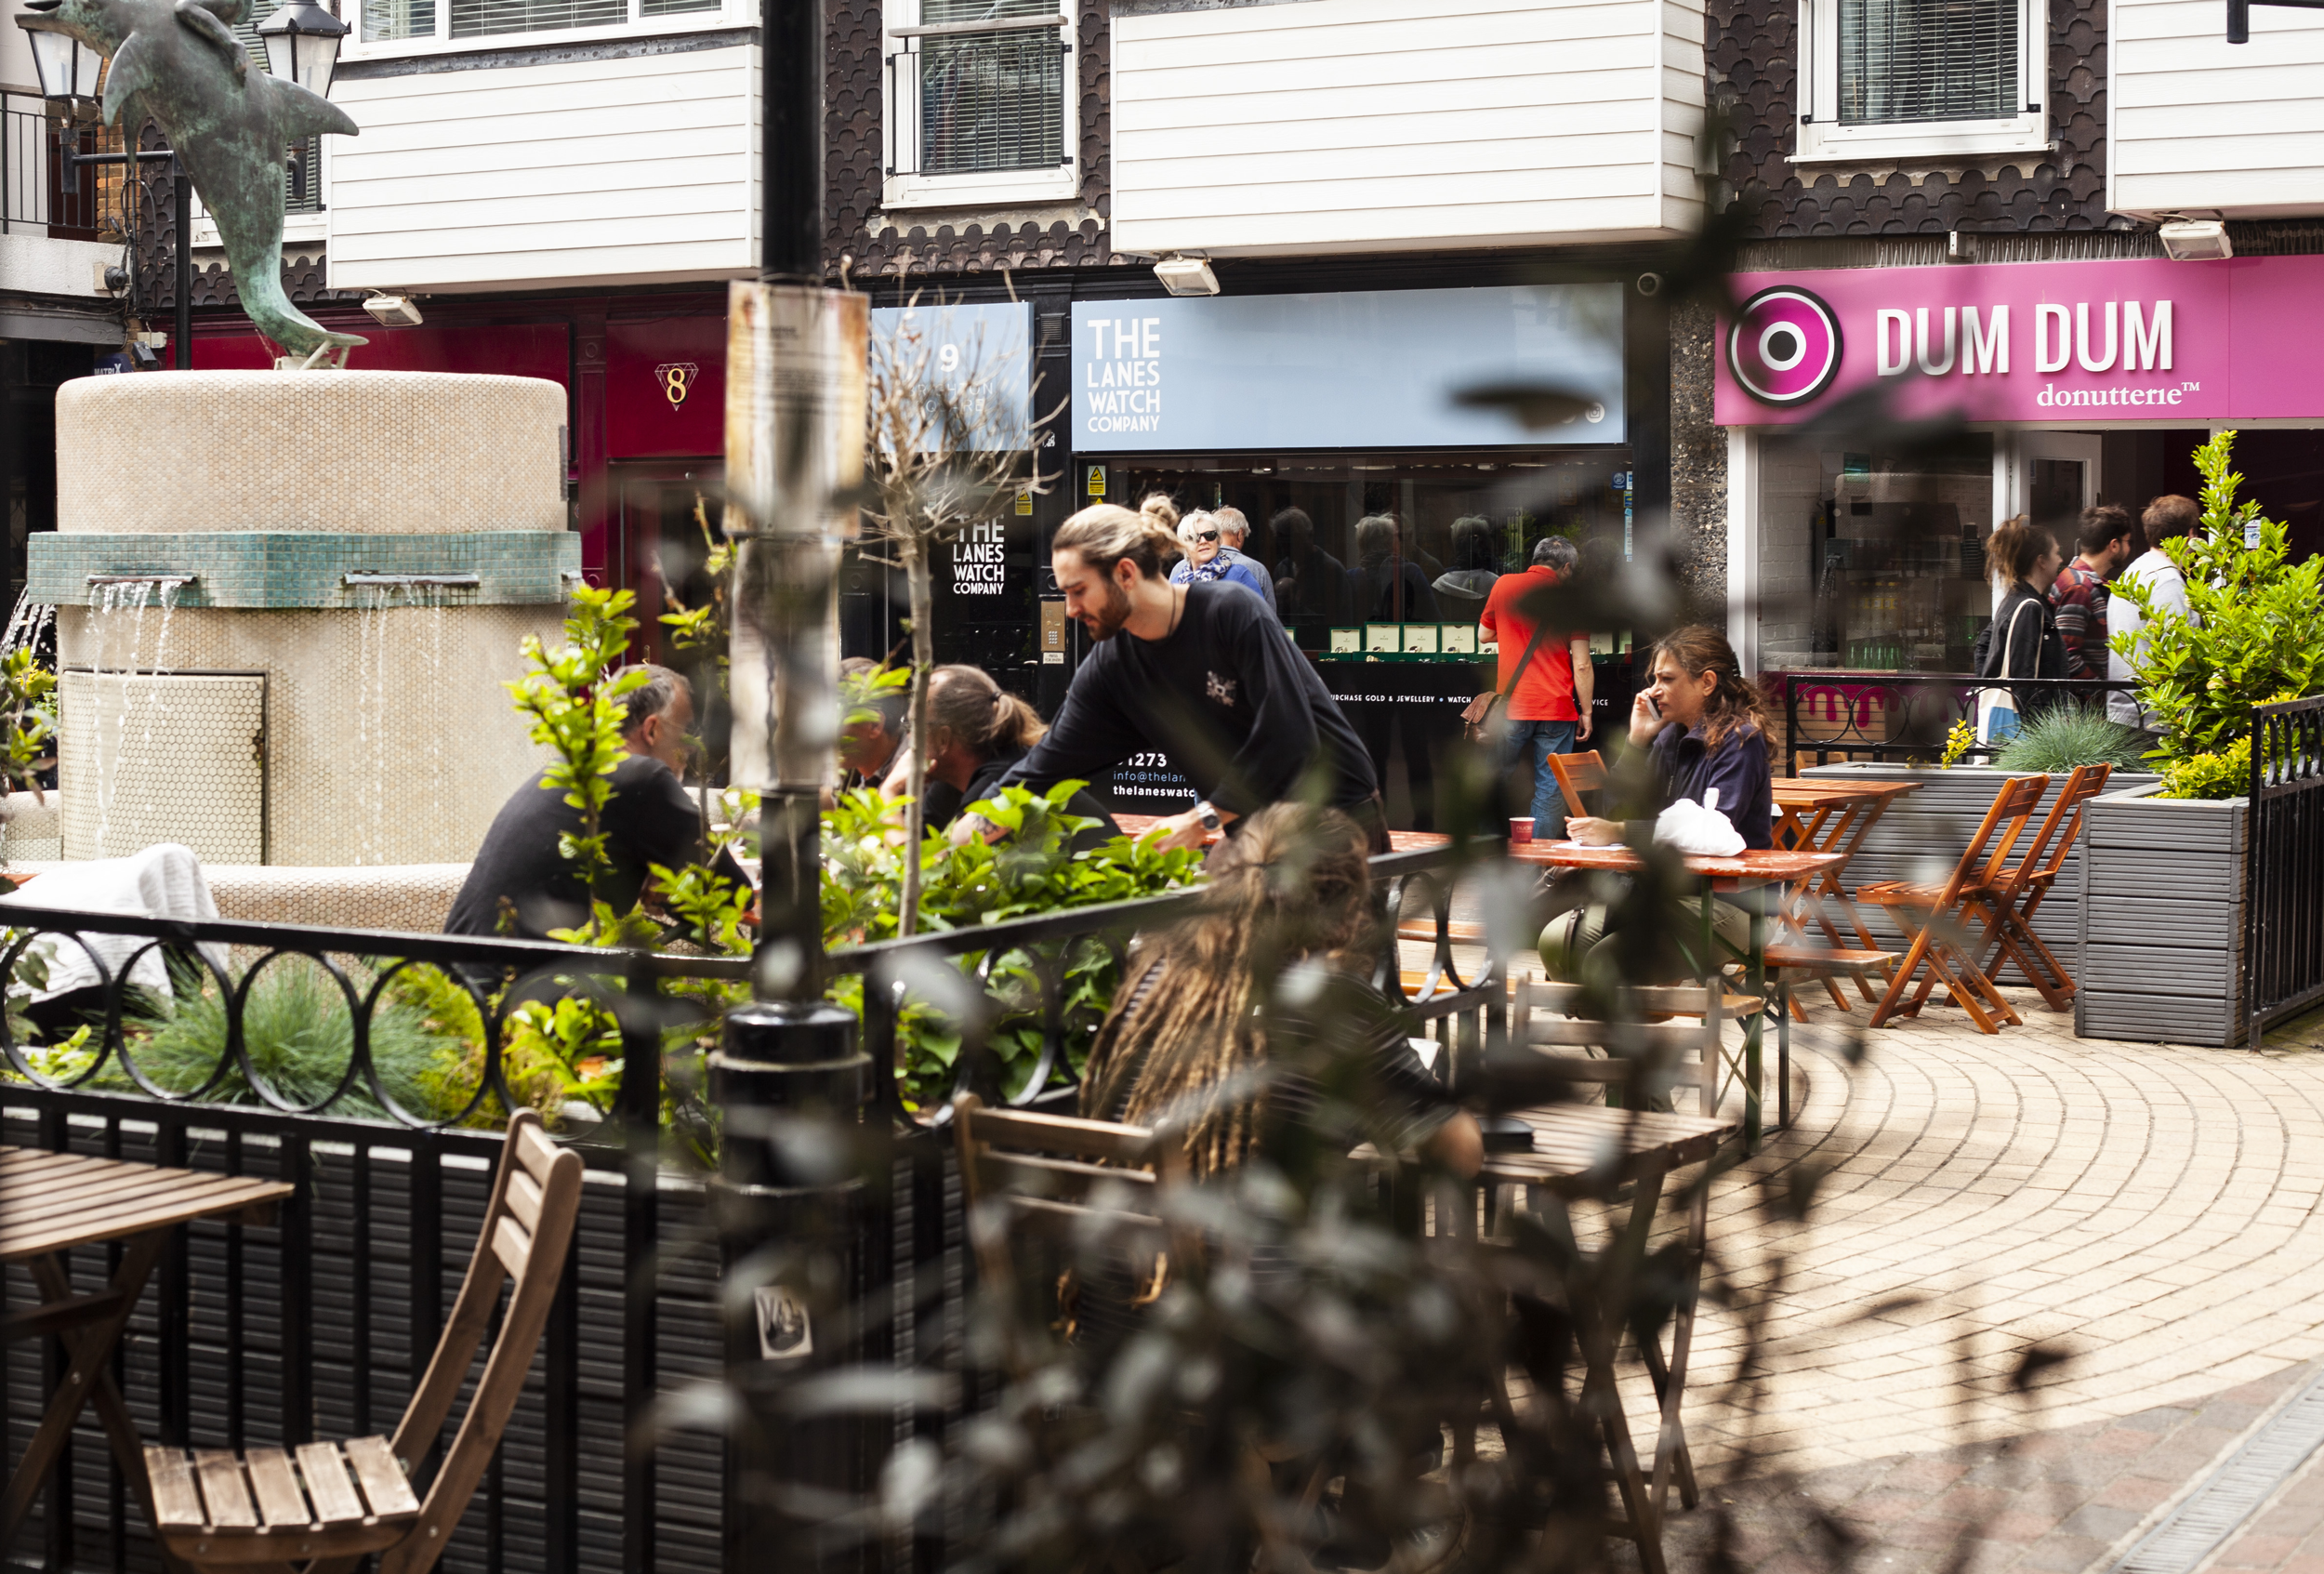 brighton, hove, coffee, speciality, artisan, shop, cafe, store, food, drink, 2019, the, plant, room, rooms, square, all, press, vegan, food, drink, vegetarian,